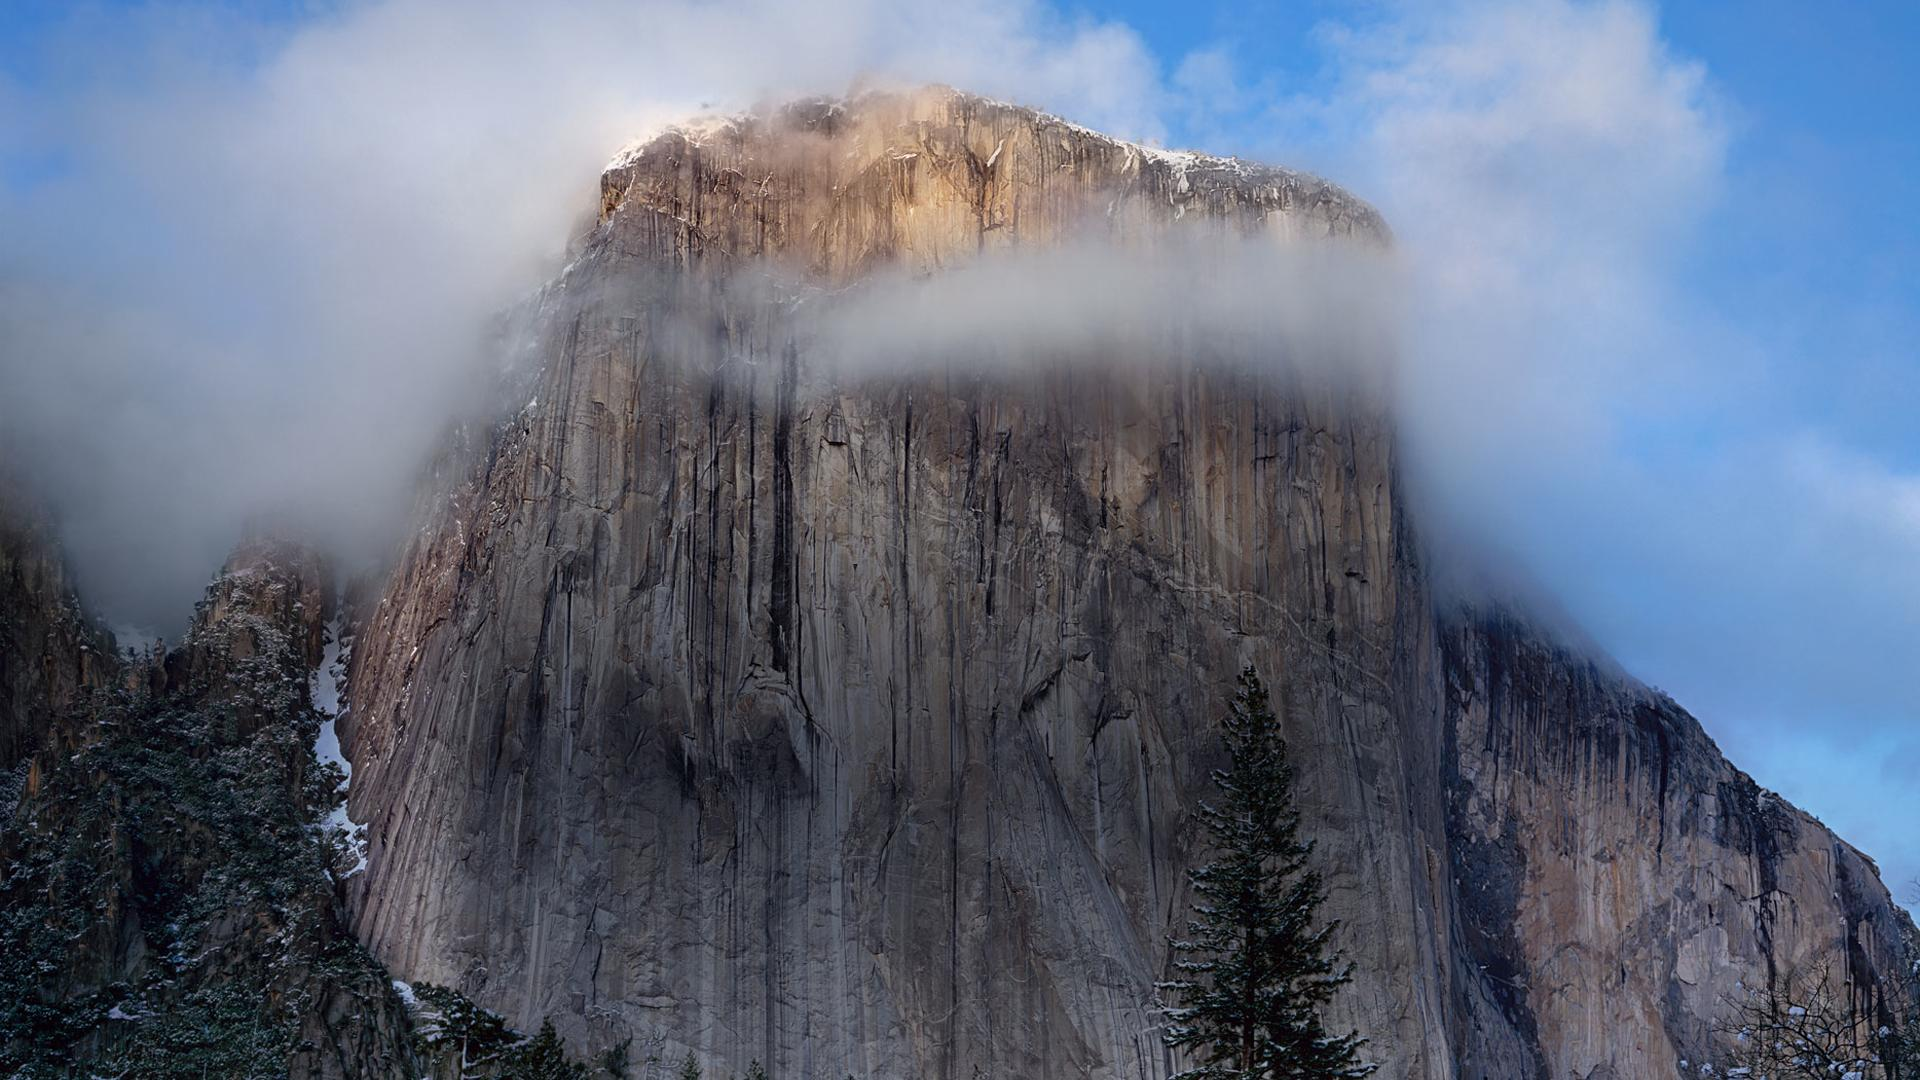 Hd wallpaper yosemite - Yosemite Wallpapers Macrumors Forums